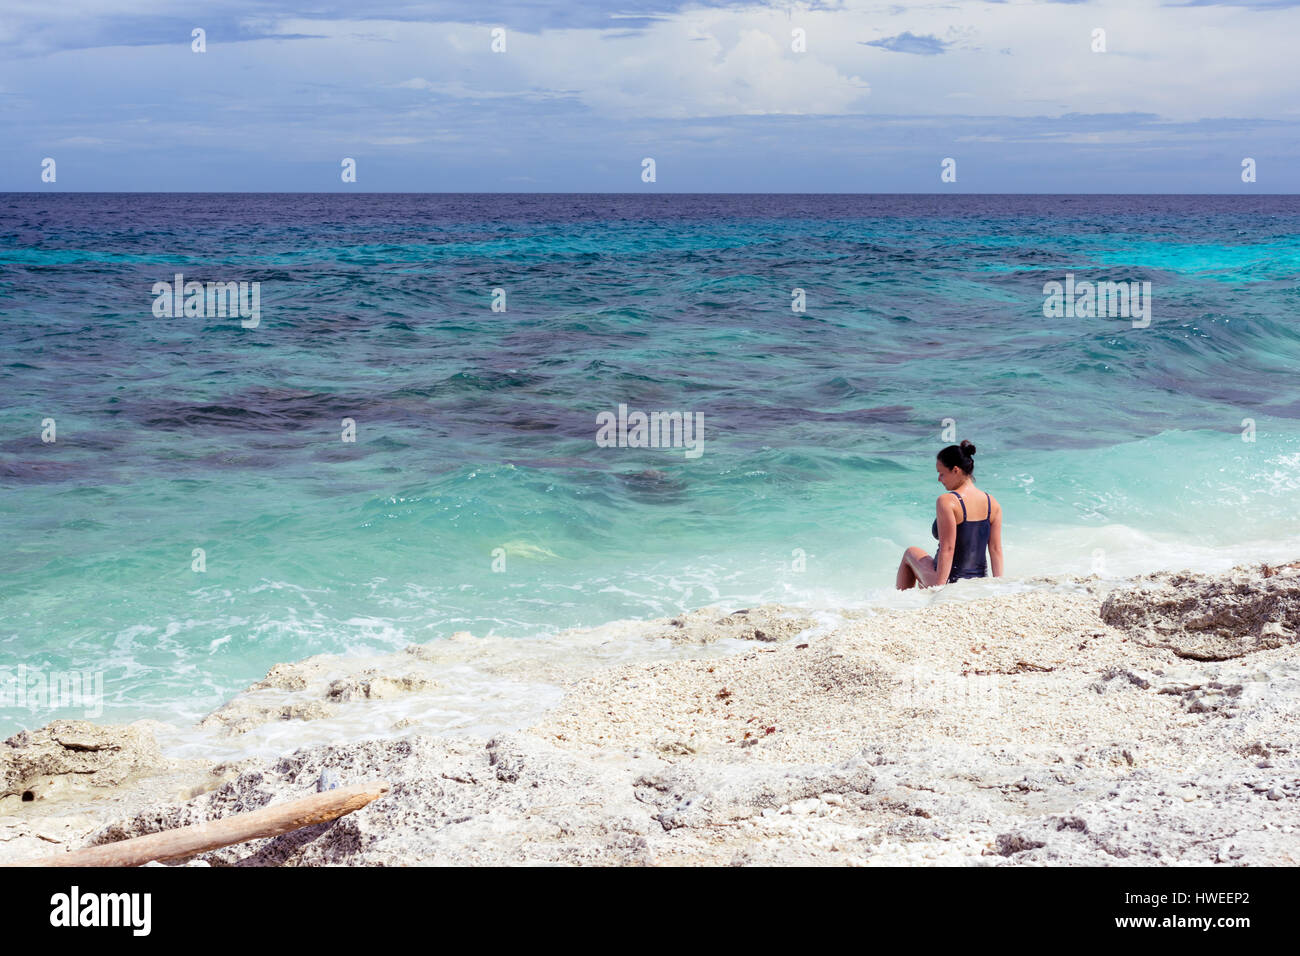 A beautiful young woman in a bathing suit sat on an empty coral rock beach looking out to a deep blue sea. - Stock Image